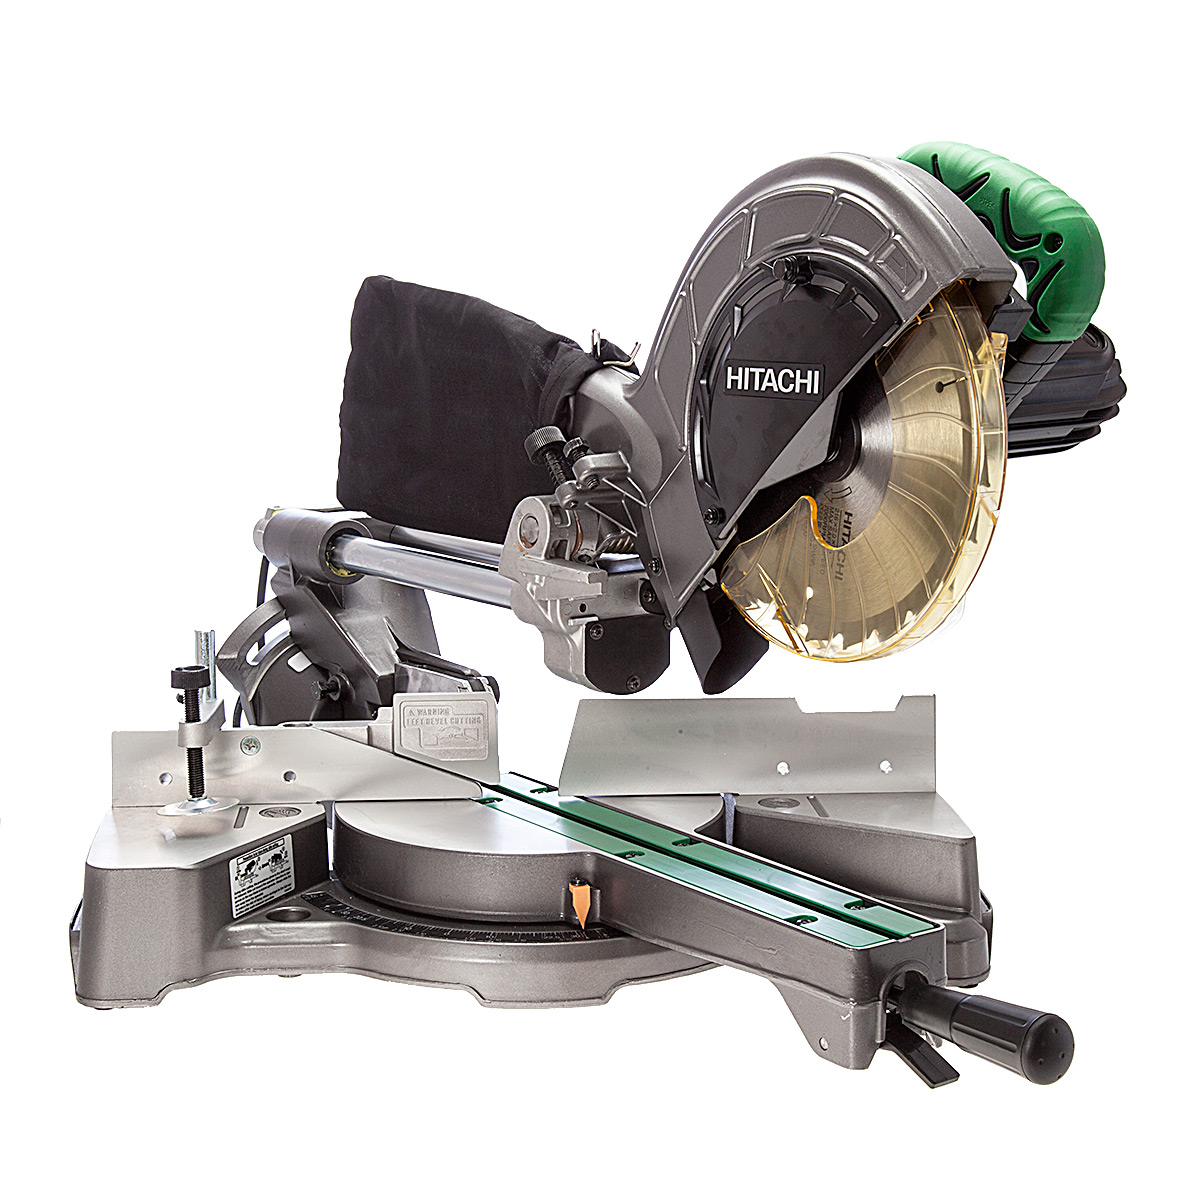 HITACHI C8FSE 216MM SLIDE COMPOUND MITRE SAW 240V